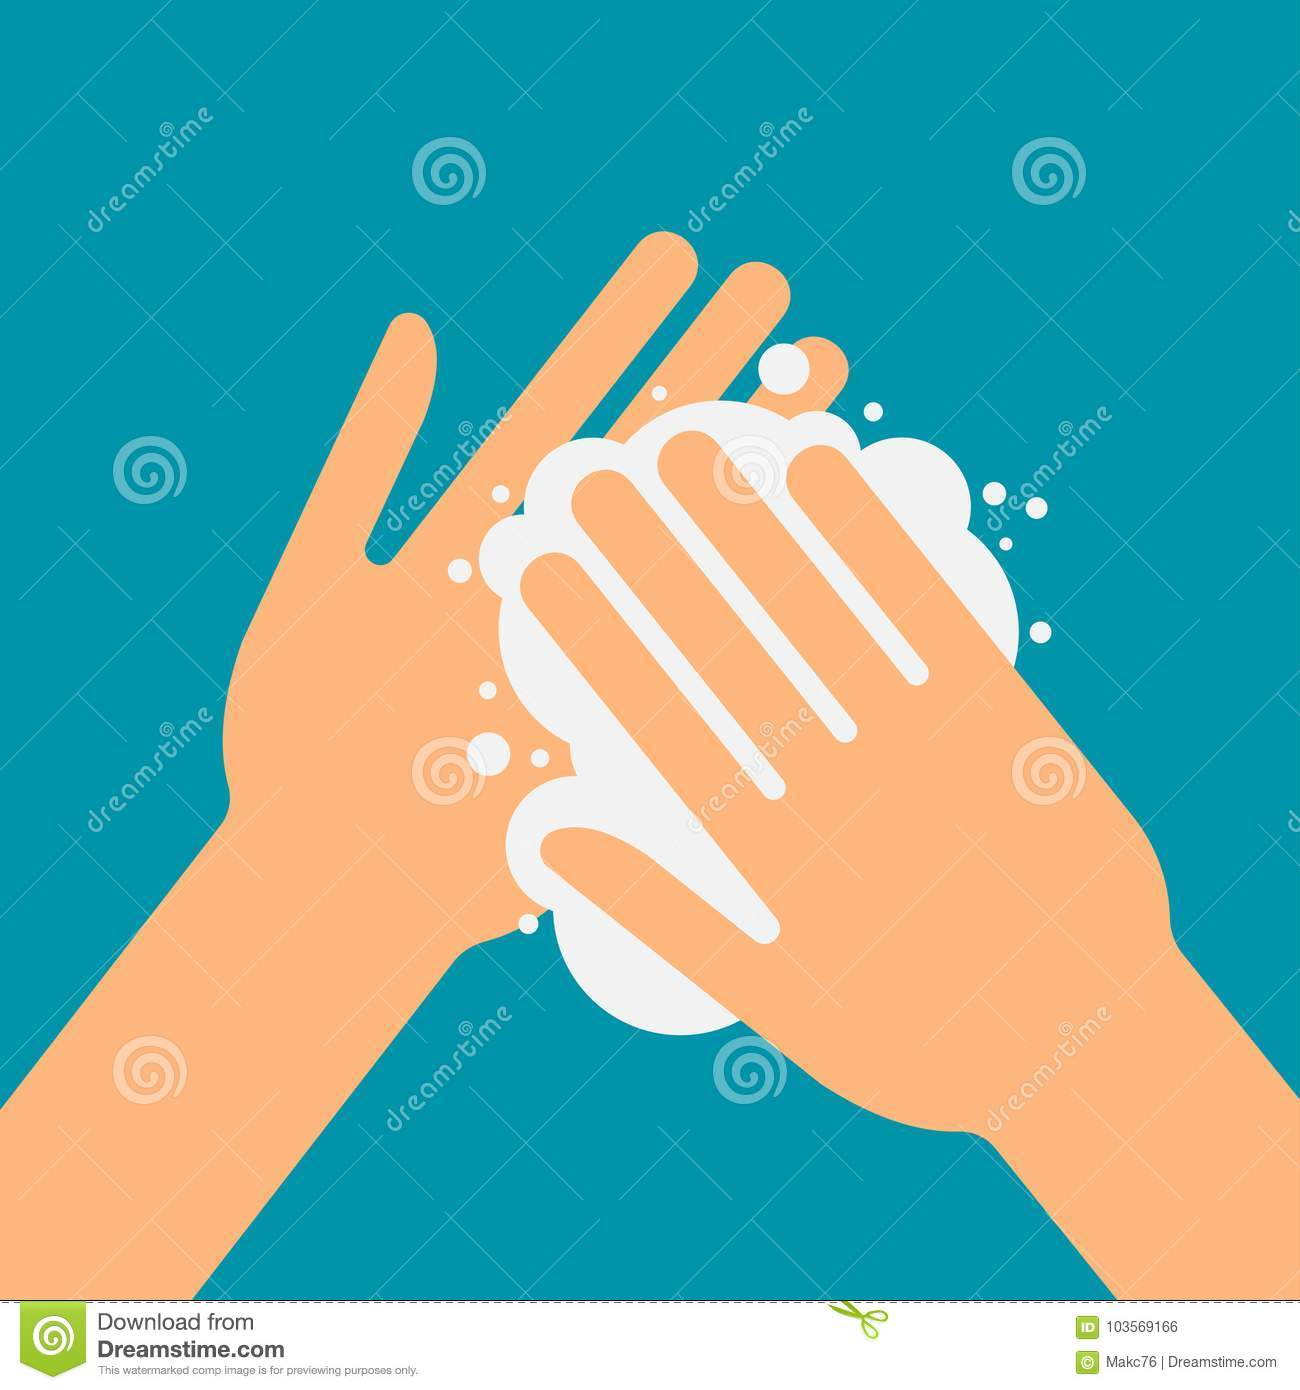 Please Wash Your Hands Stock Vector Illustration Of Icon 103569166